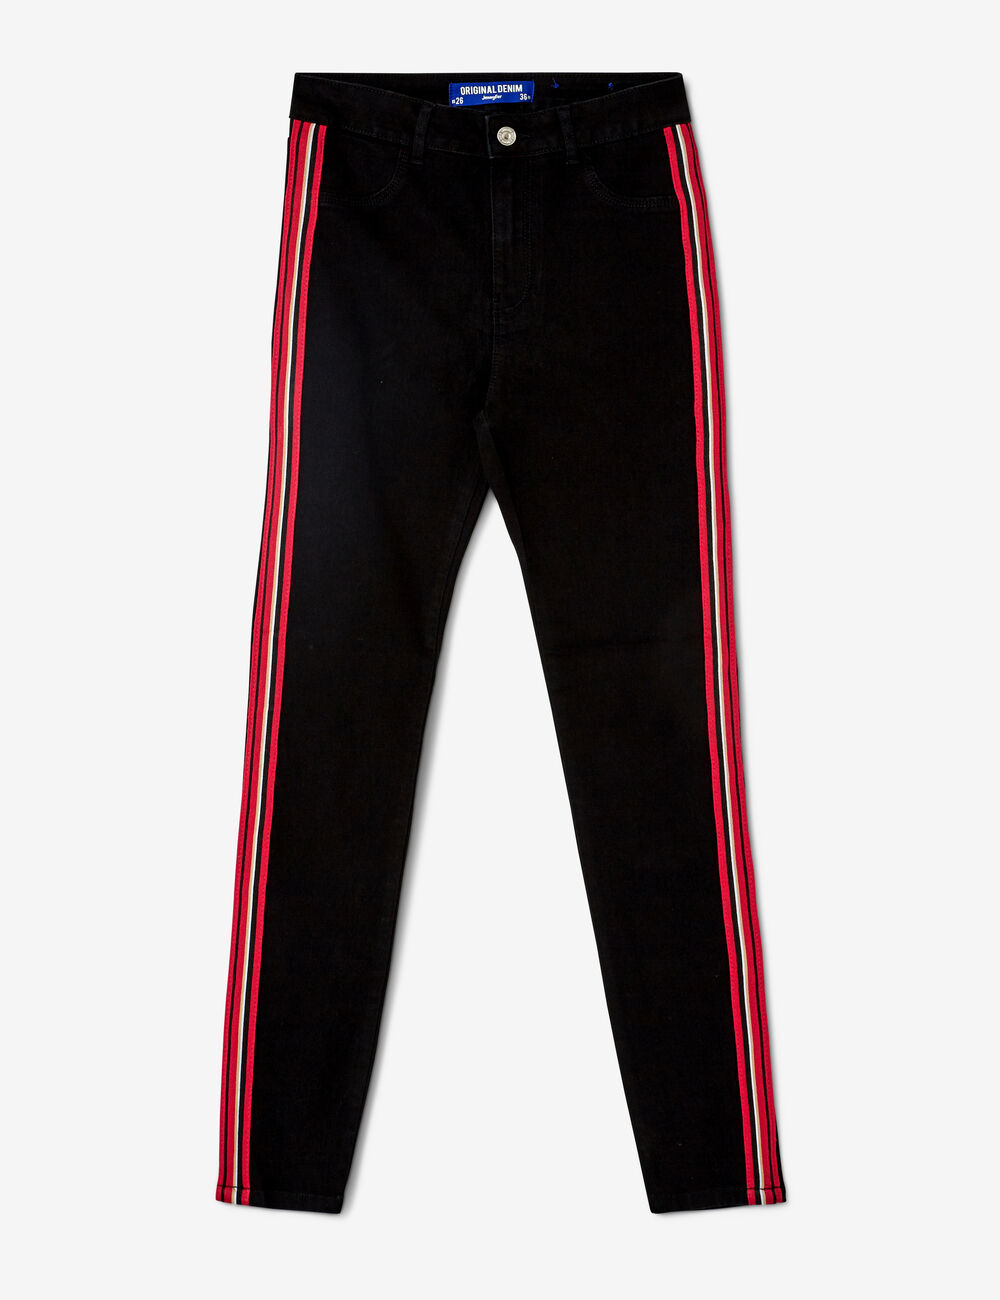 a6ef90b137e23 Black, red and white jeggings with striped trim detail woman • Jennyfer